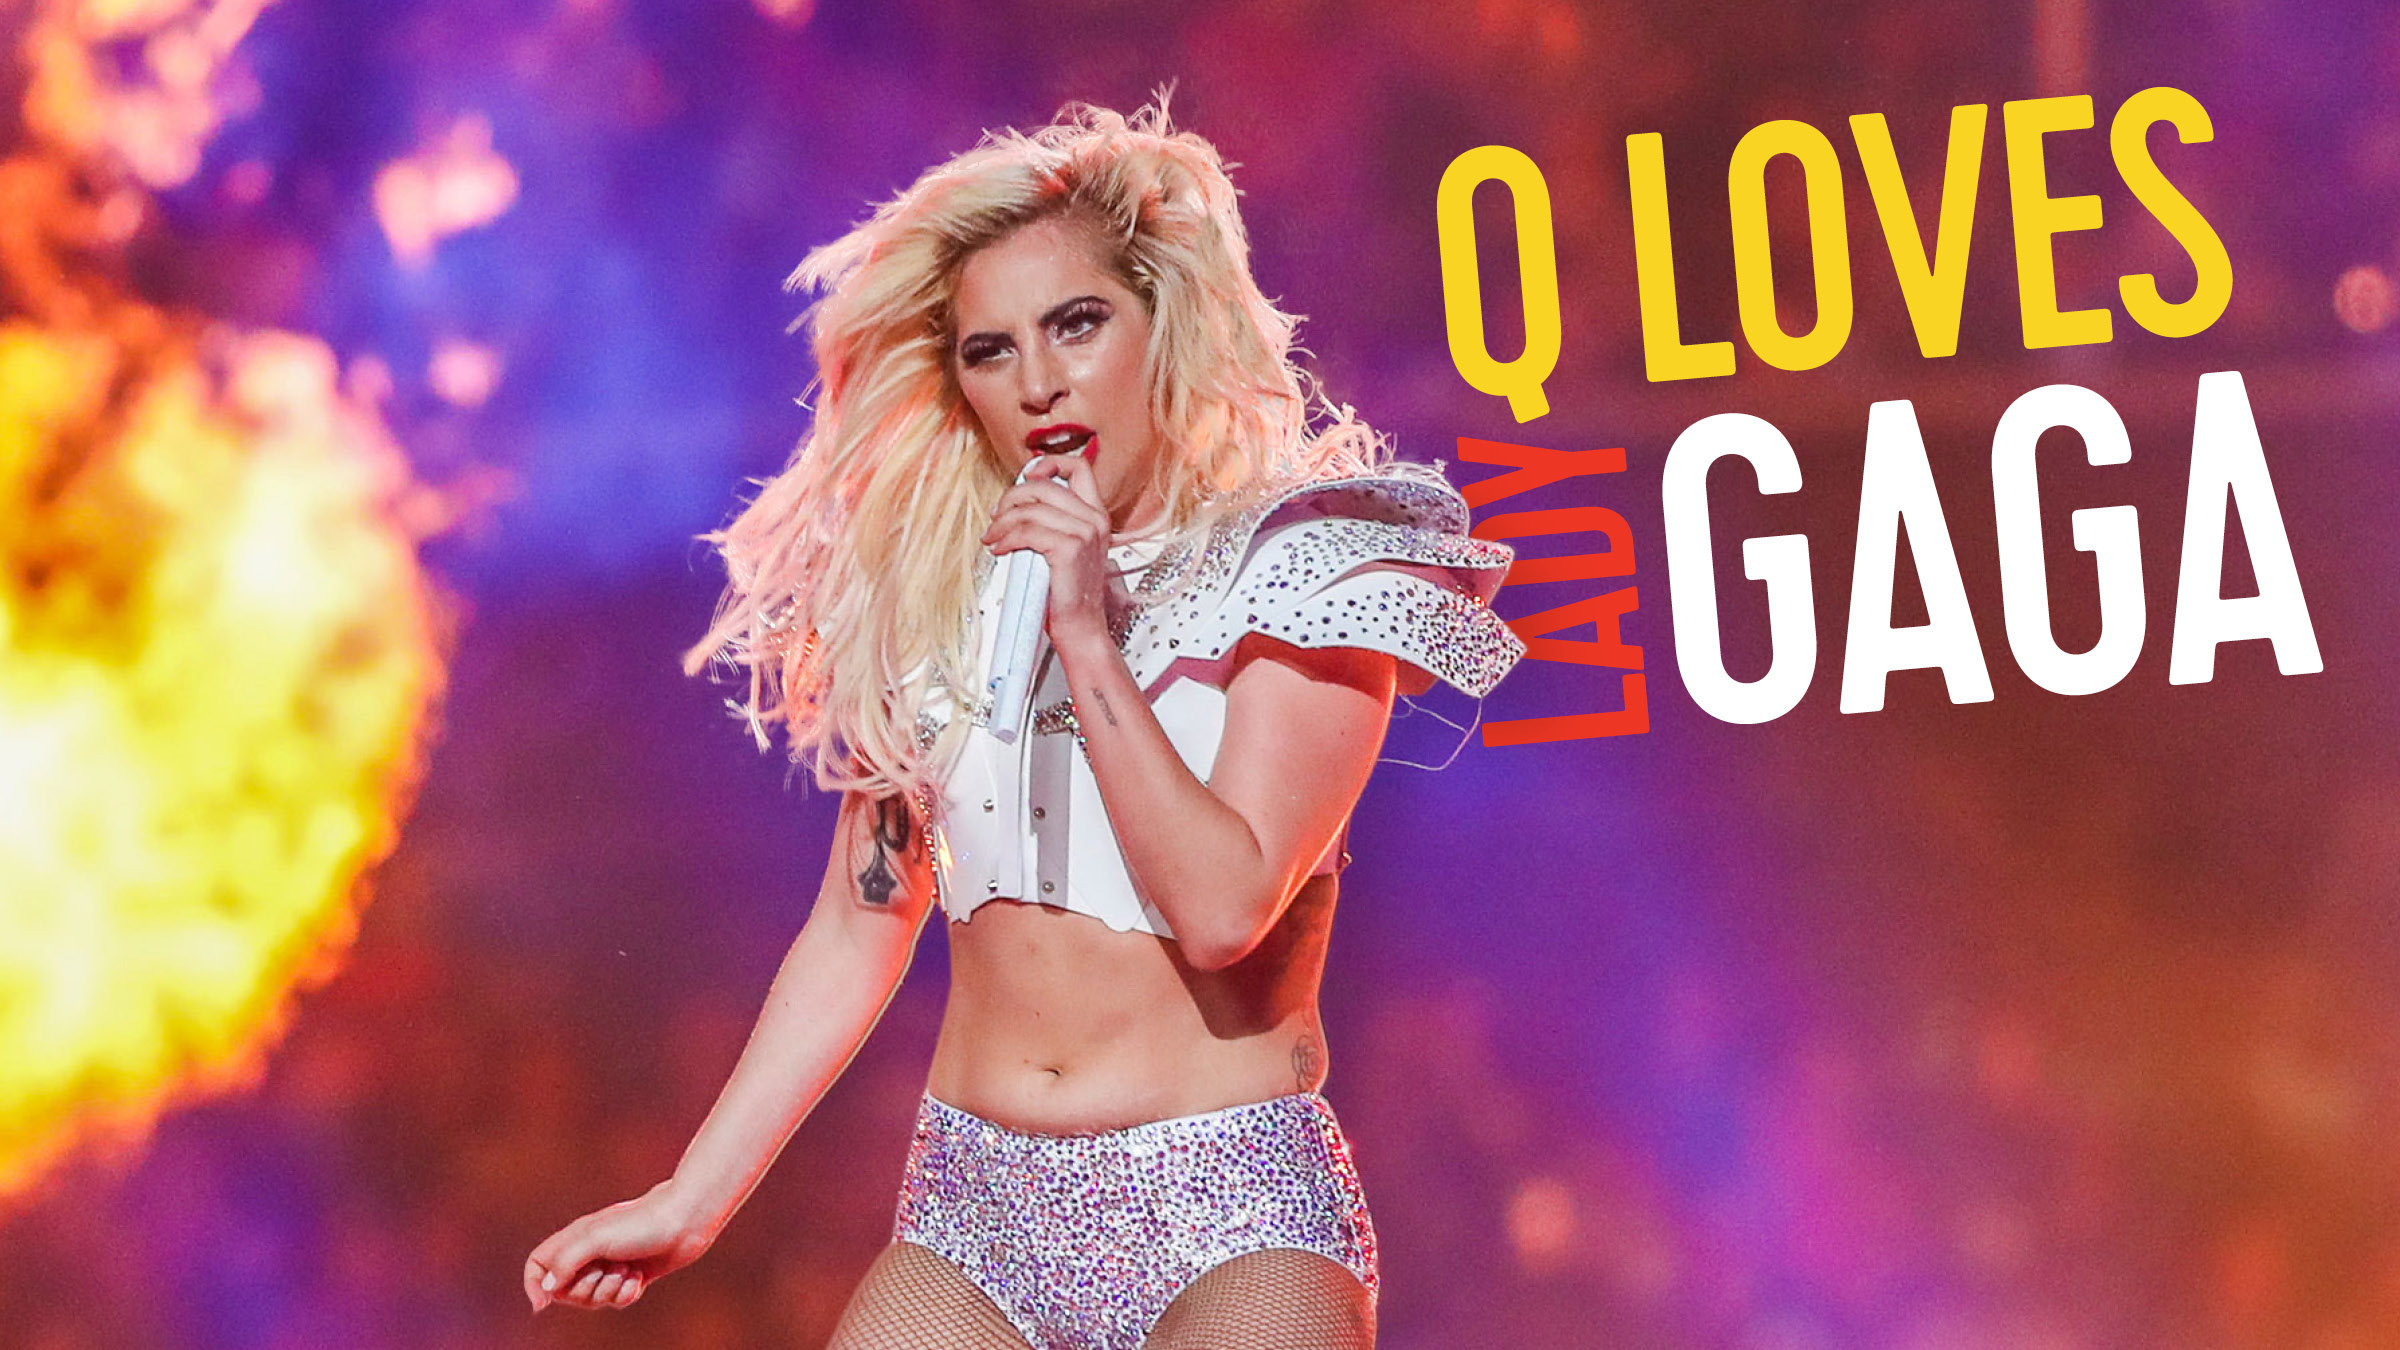 Qloveladygaga headers 2400x1350